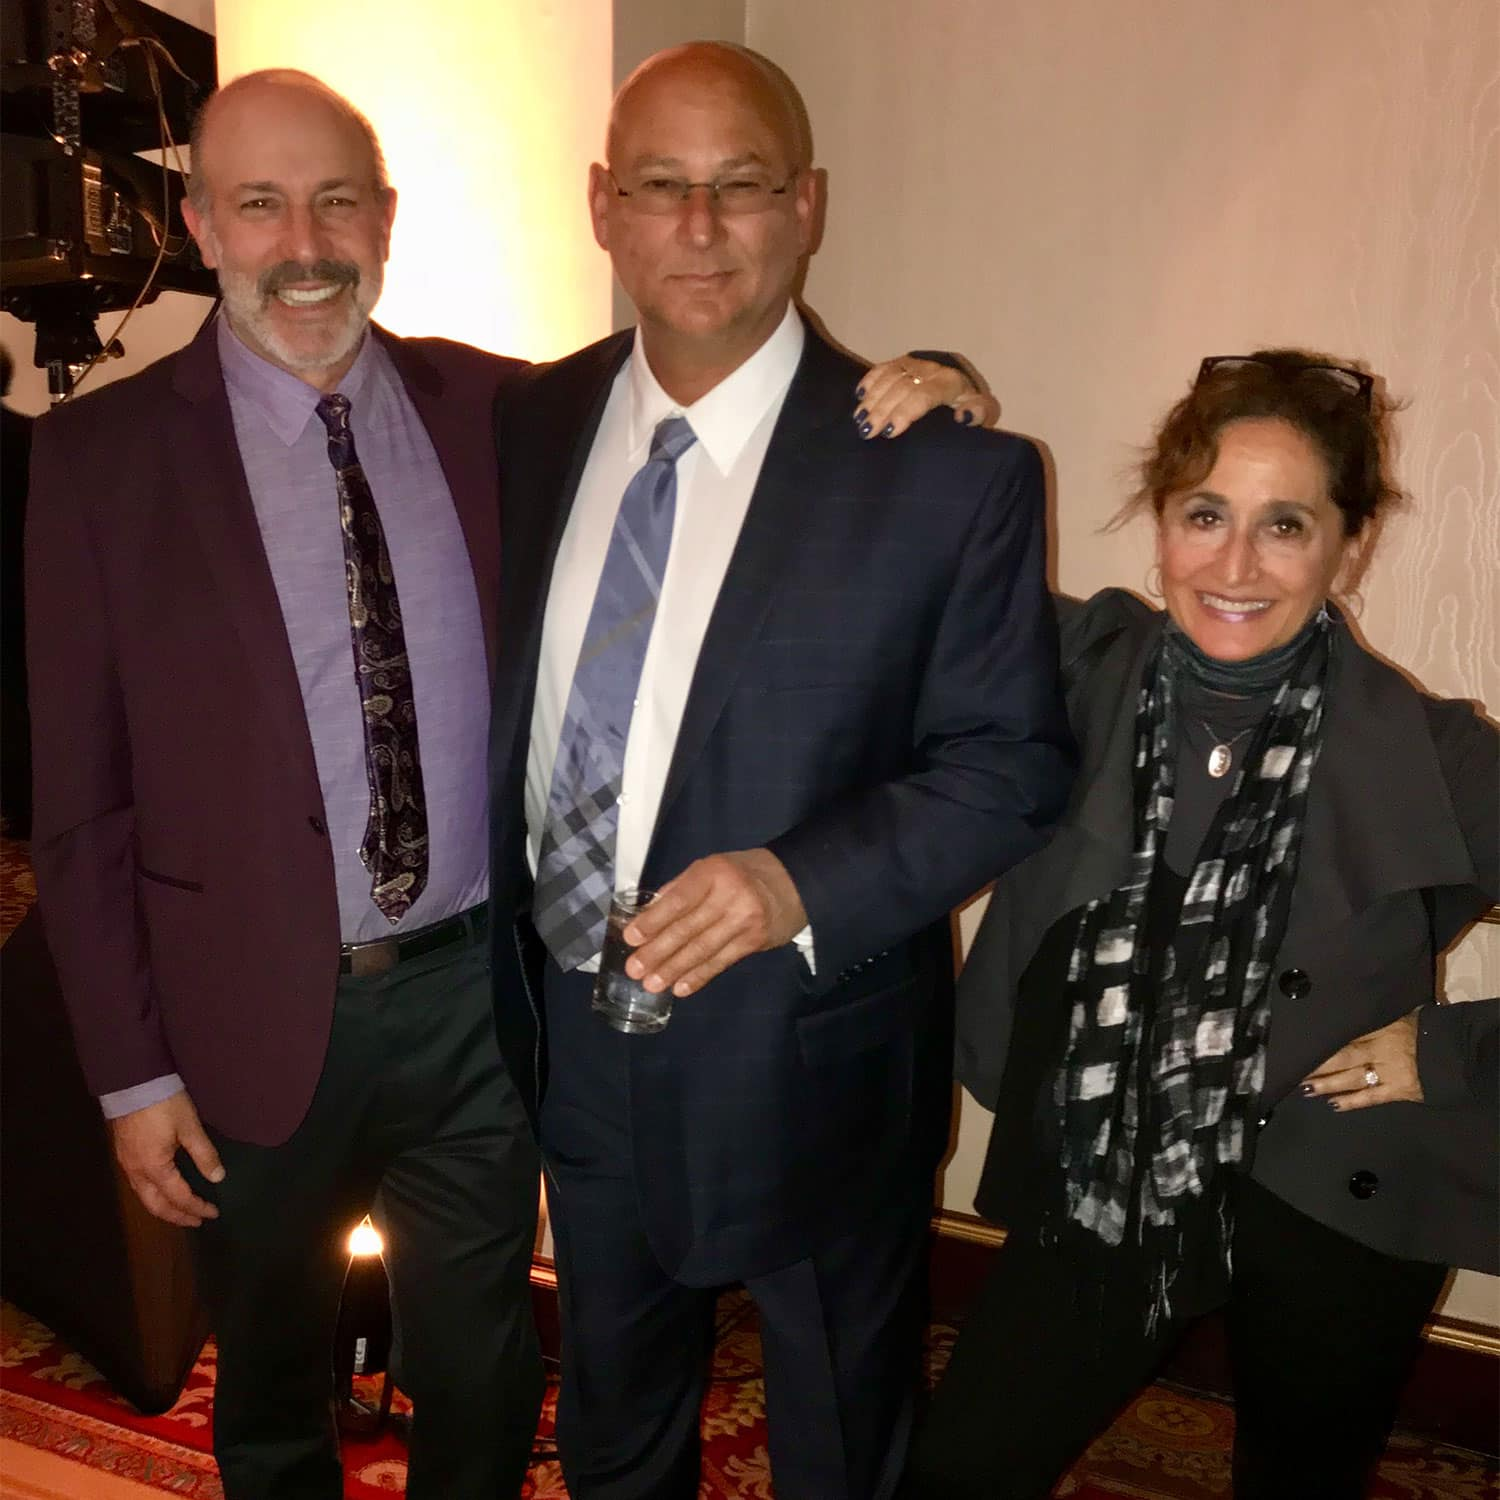 Terry Francona, Sports Awards, Great Cleveland Sports Awards, 18th, Indians, Cleveland Indians